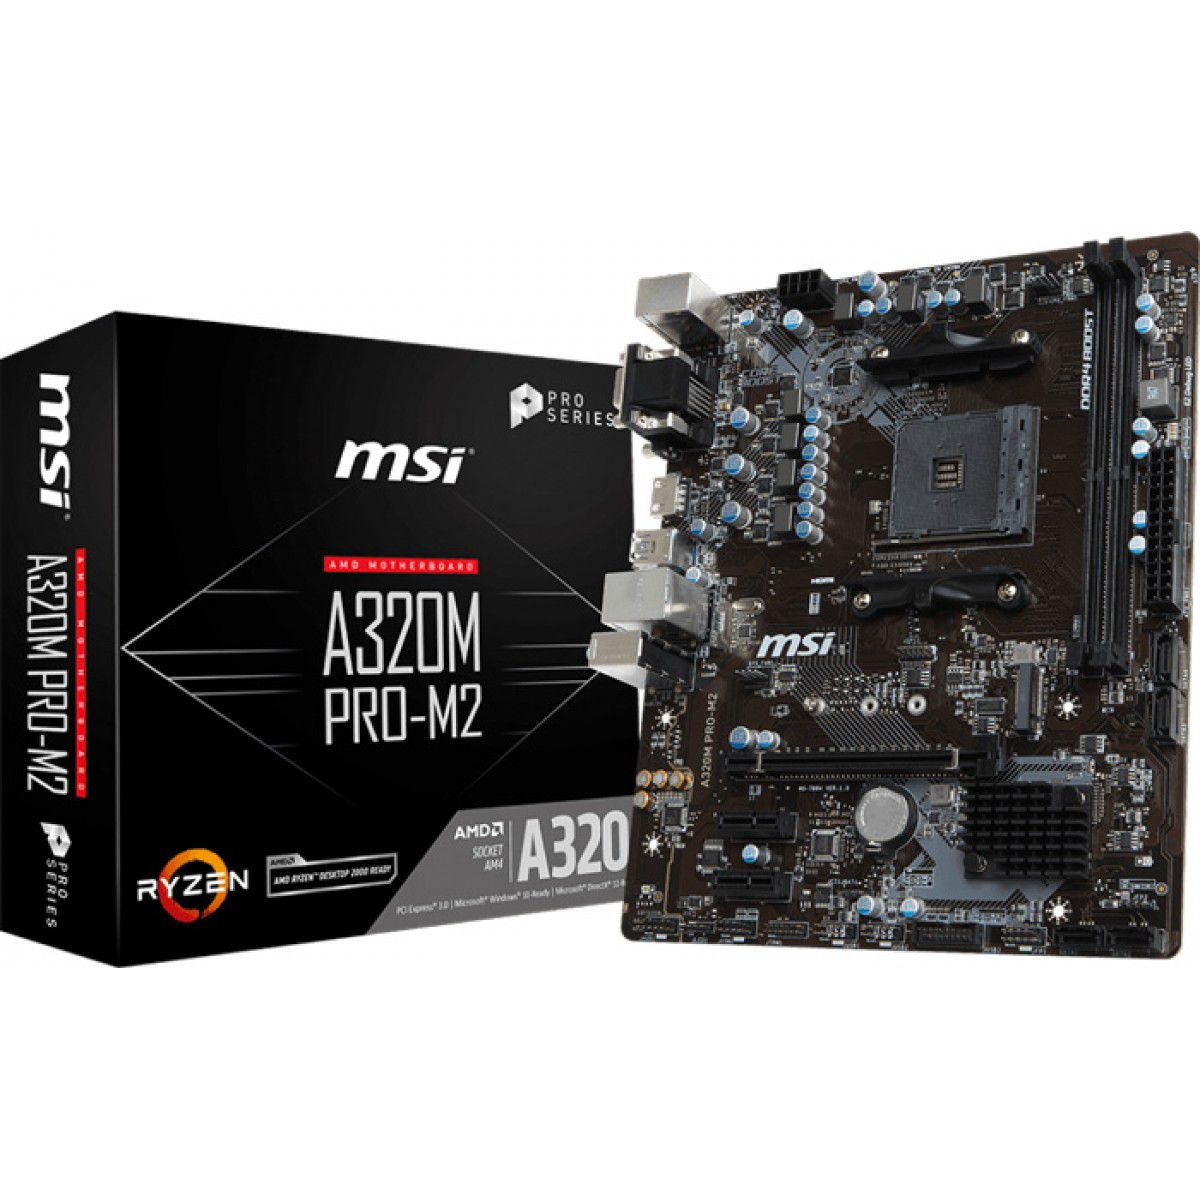 PLACA MAE MSI A320M PRO-M2 V2 DDR4 SOCKET AM4 CHIPSET AMD A320